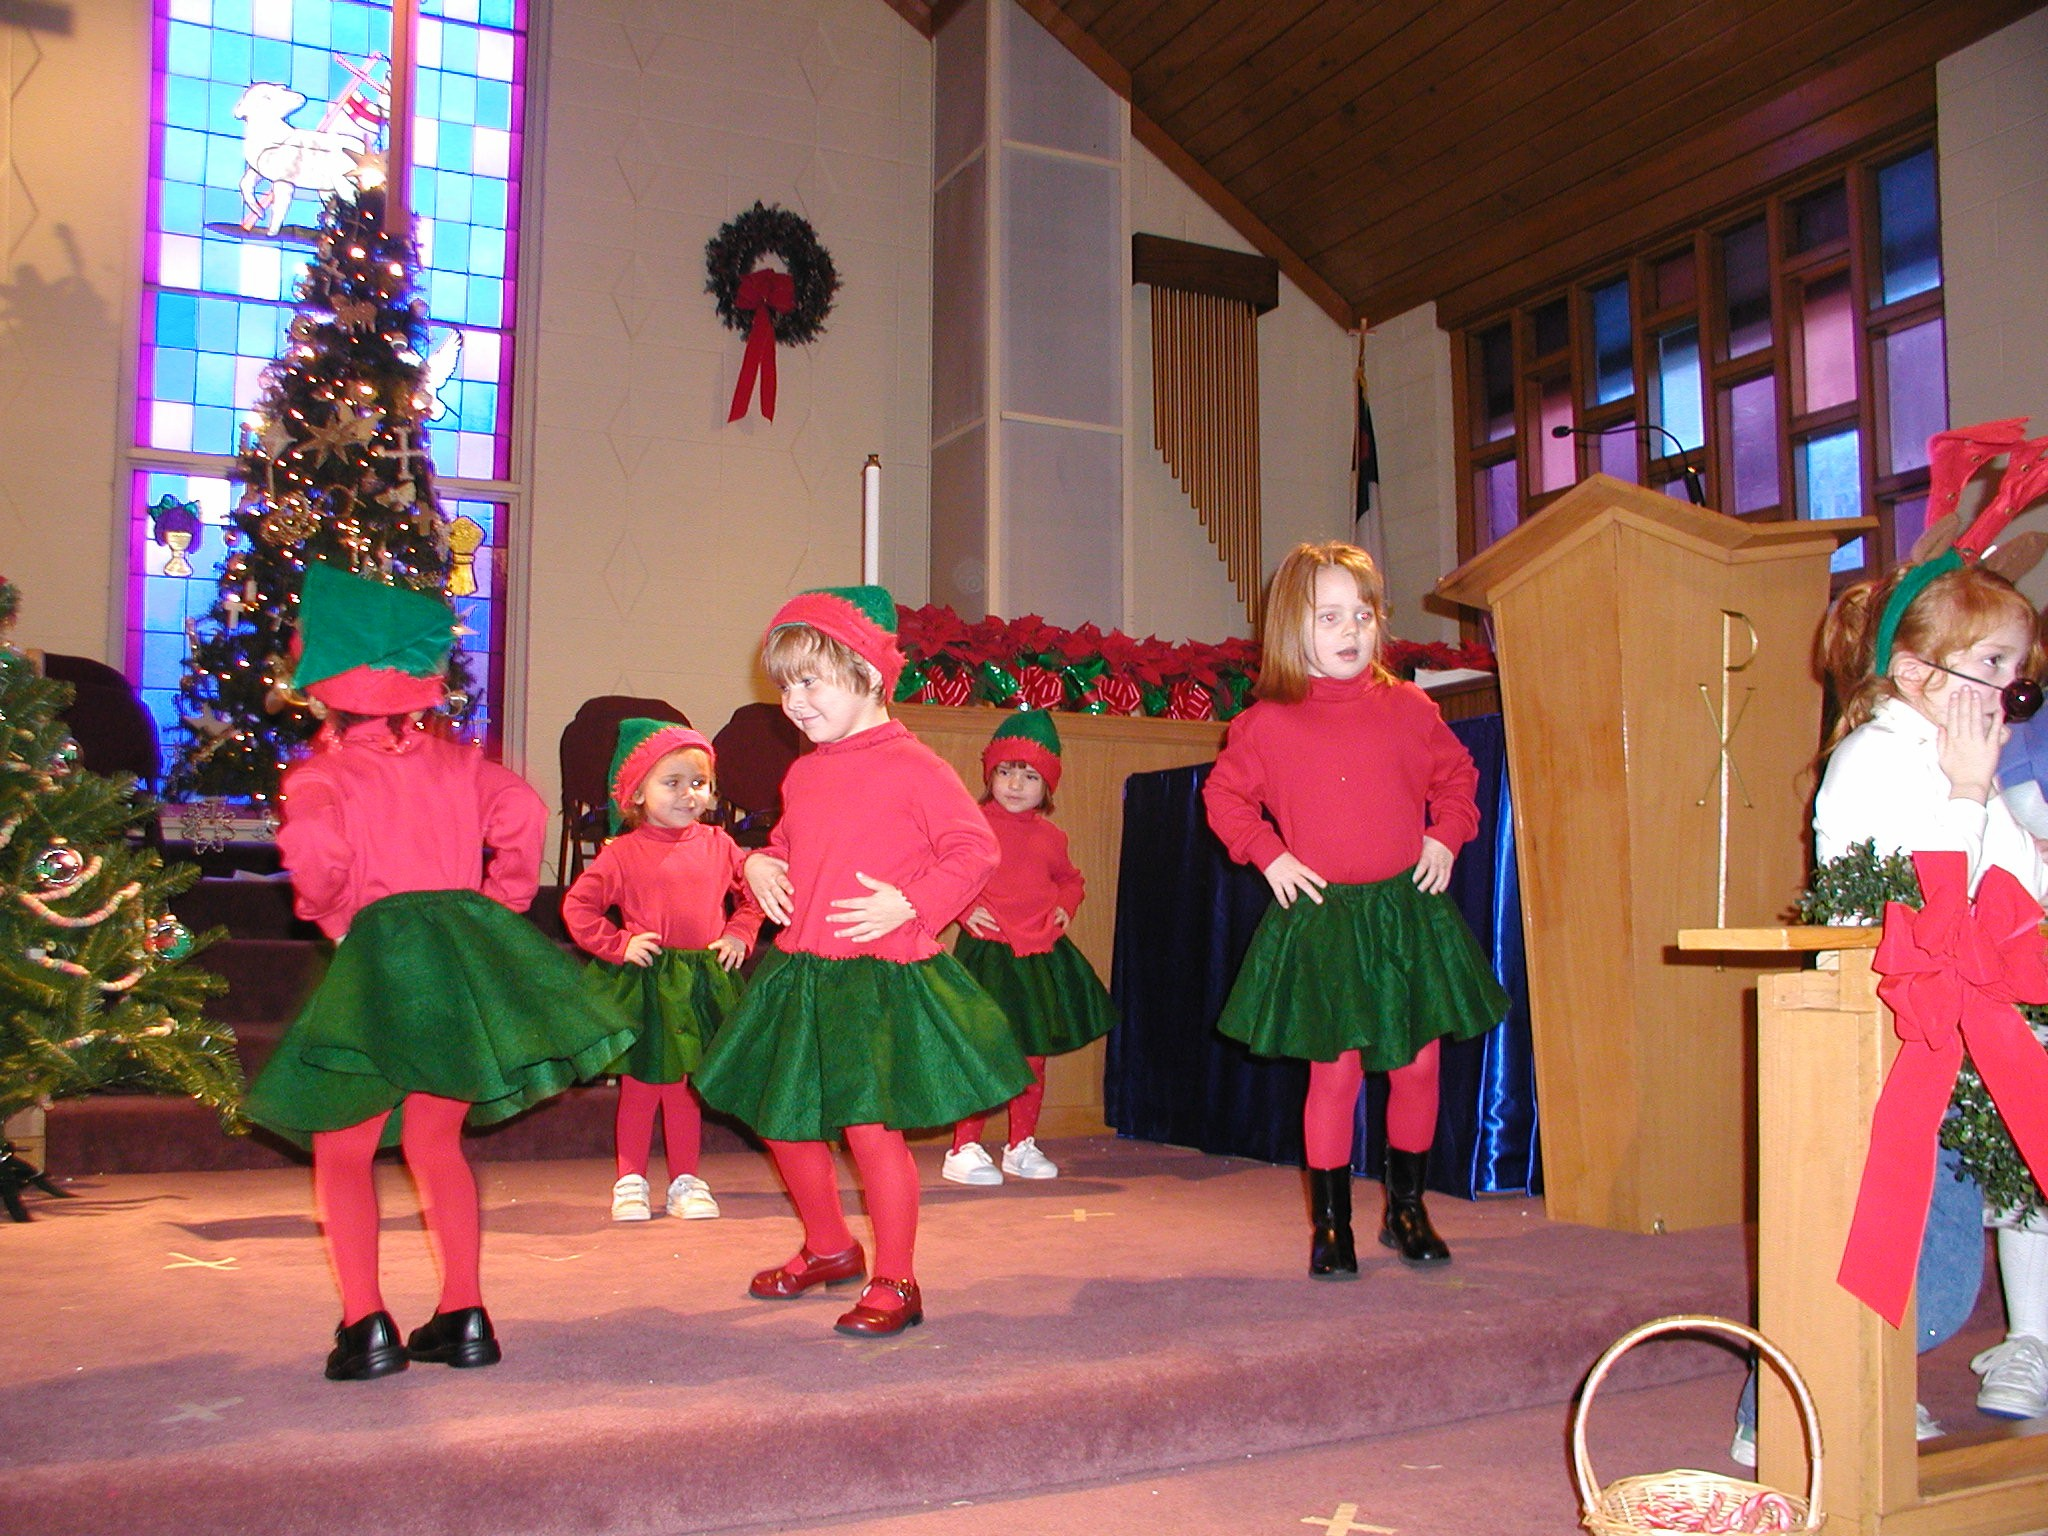 Jingle Bell Dancers